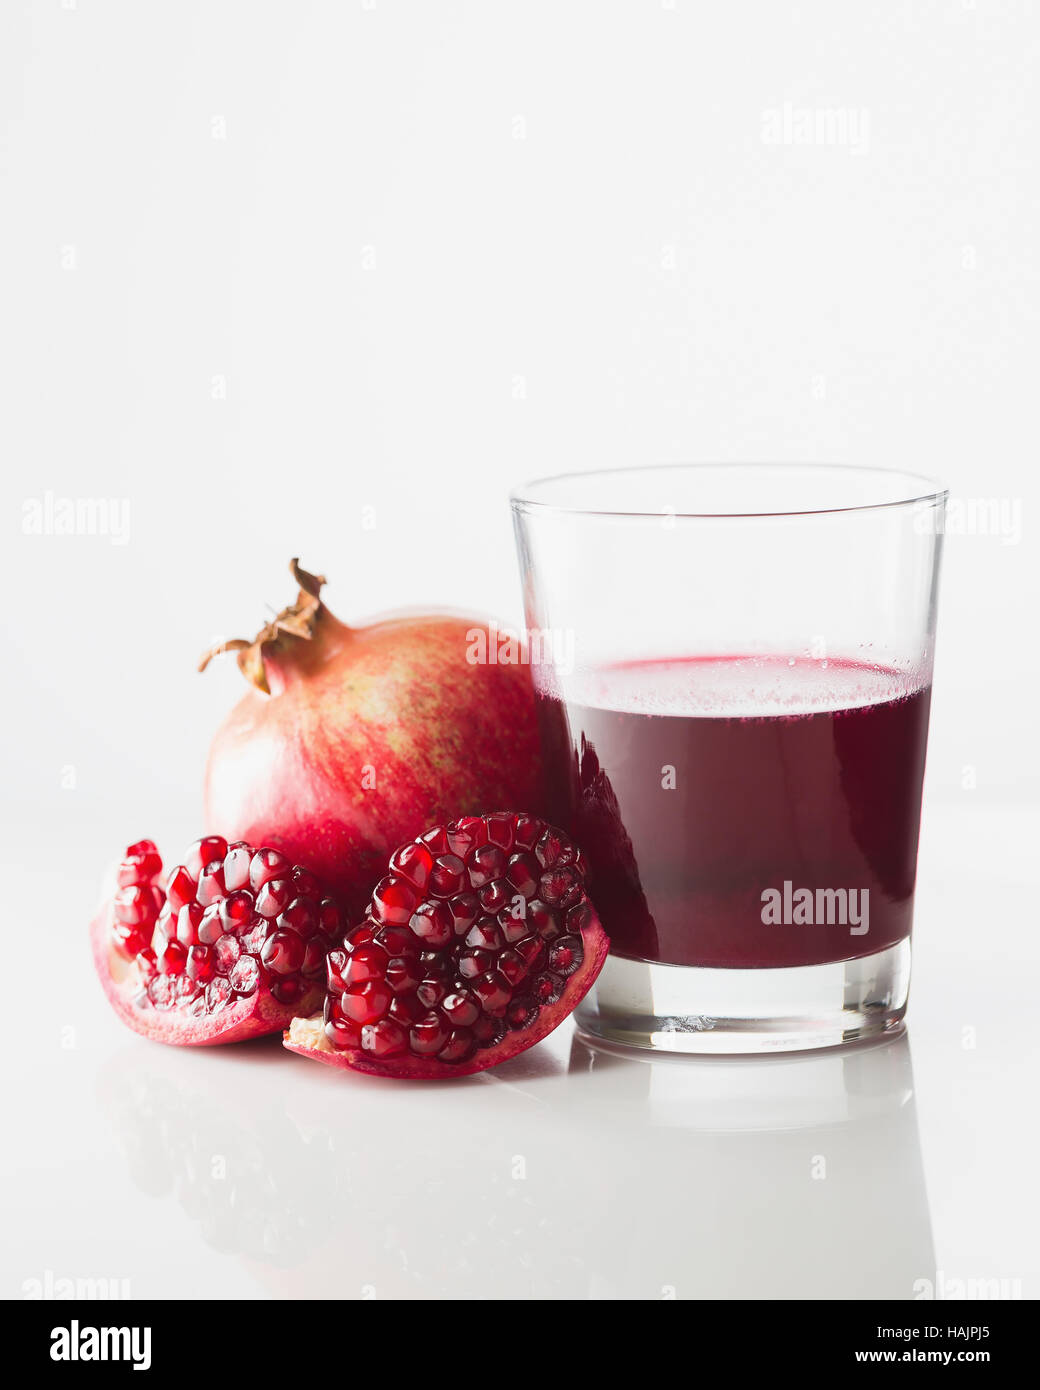 Pomegranate juice - a delicious healing drink 88